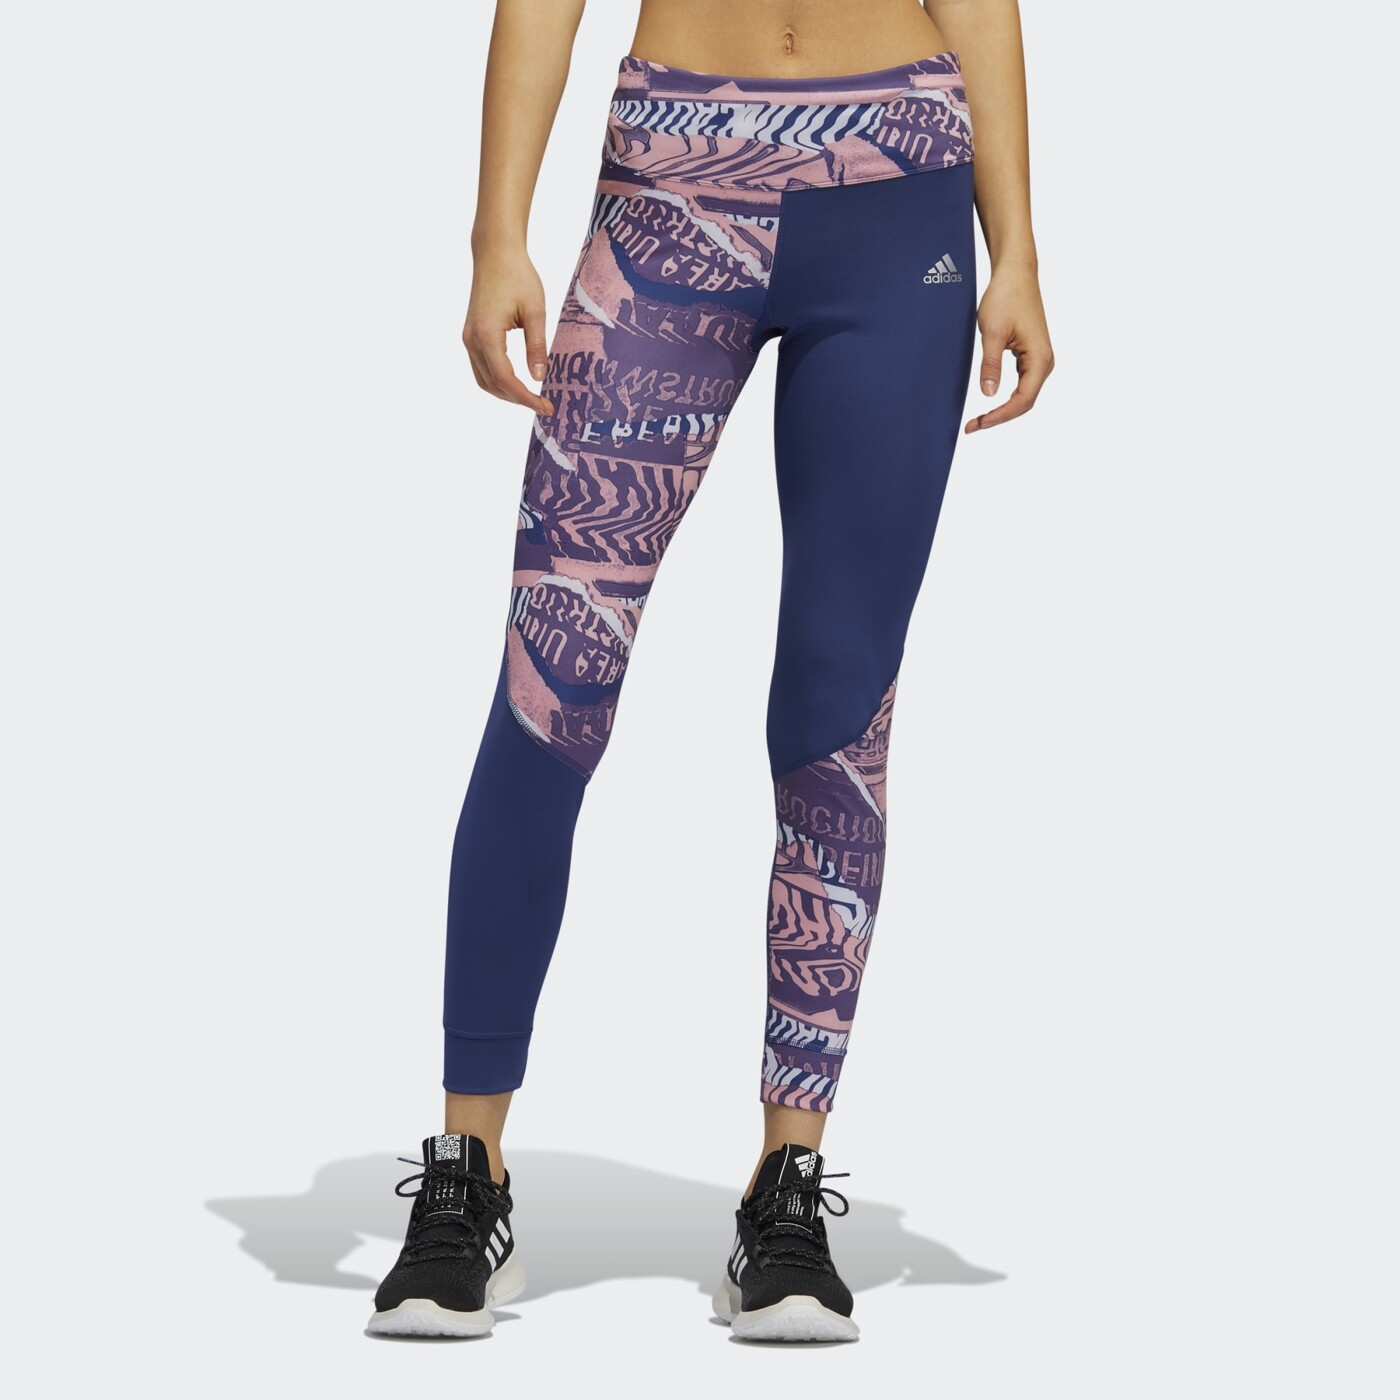 ADIDAS OWN THE RUN CITY CLASH TIGHT - Damen